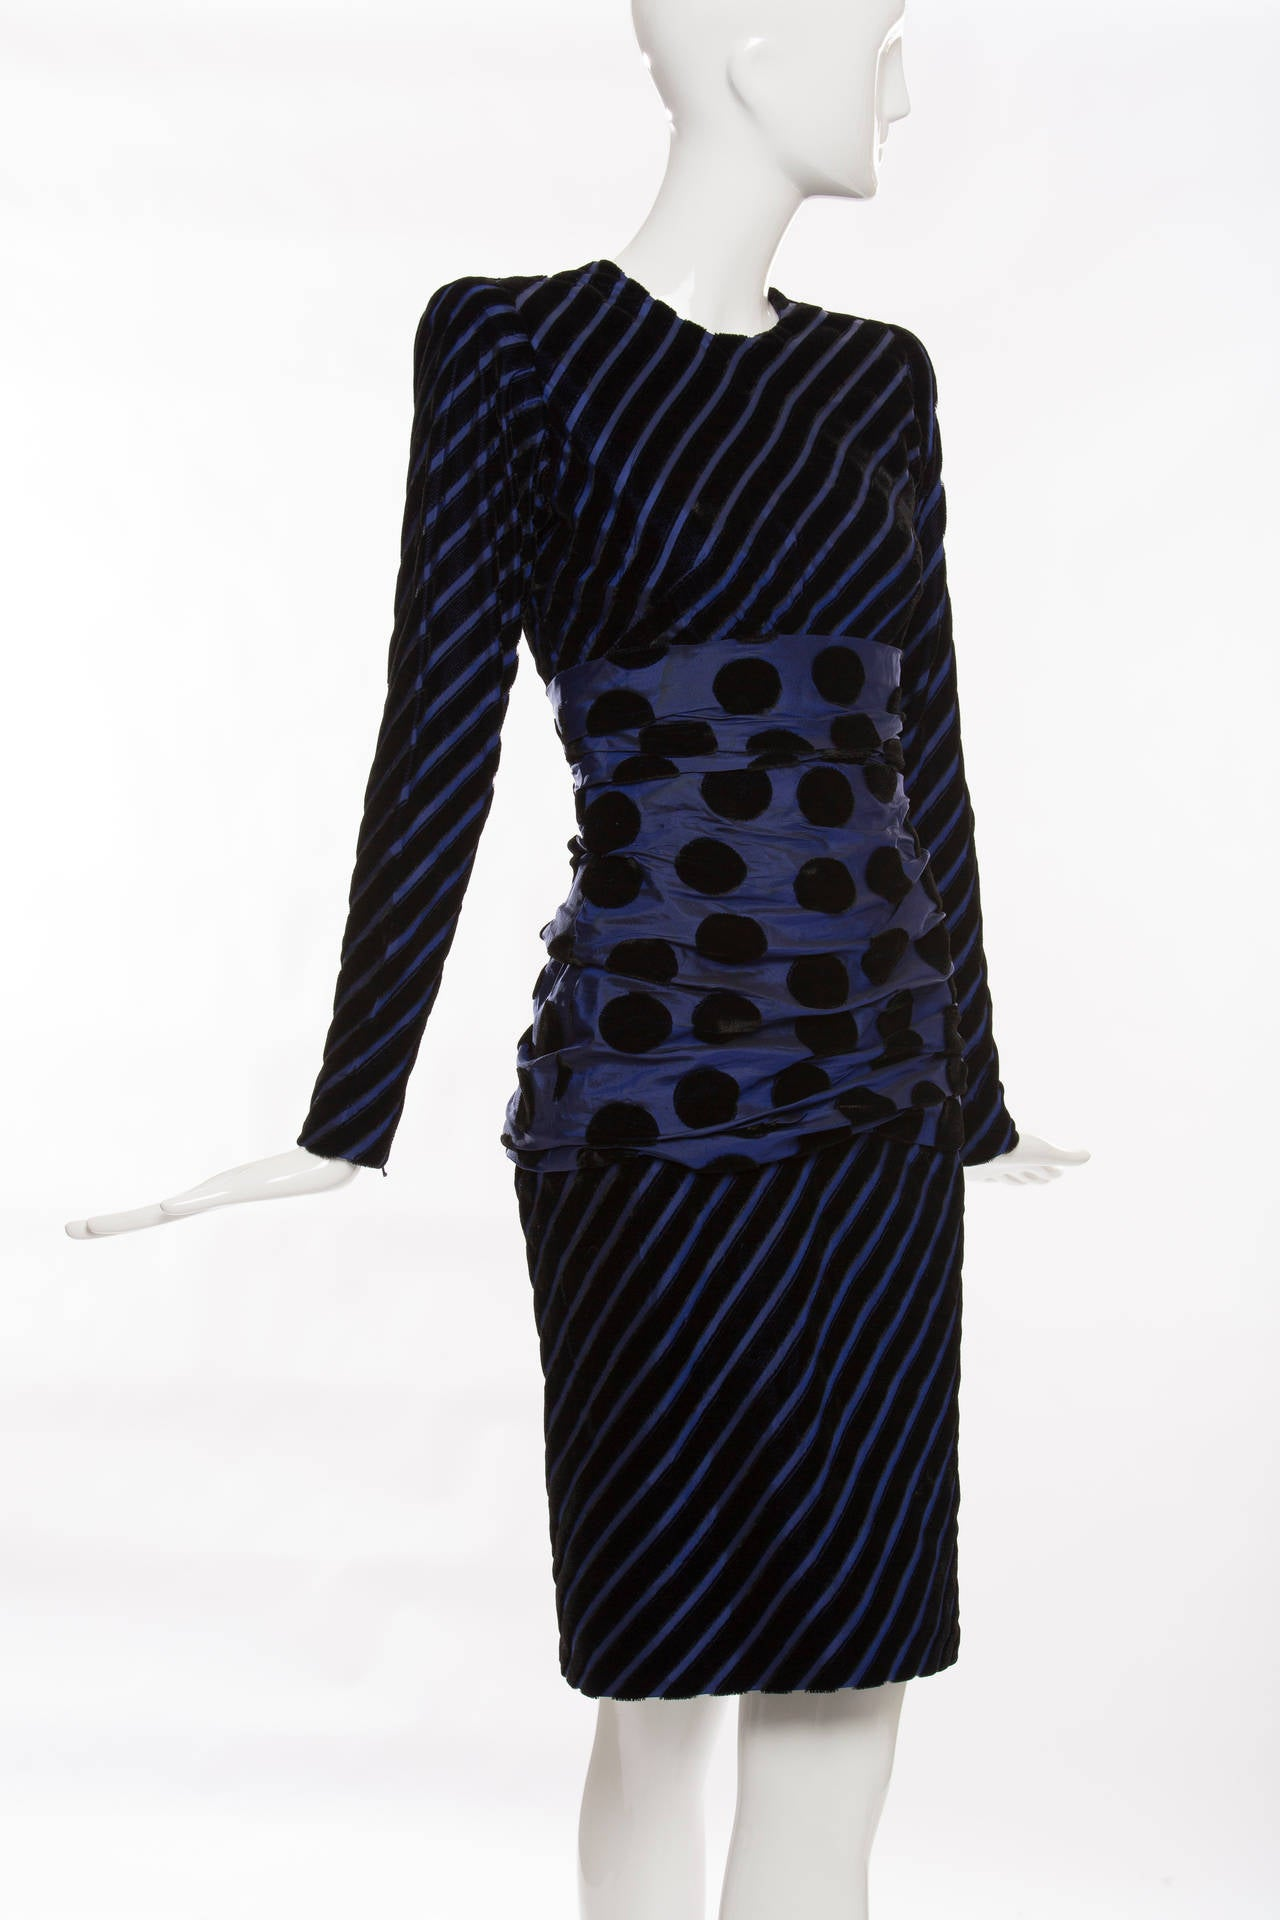 Black Givenchy Haute Couture Striped Velvet And Taffeta Dress, Circa 1980's For Sale